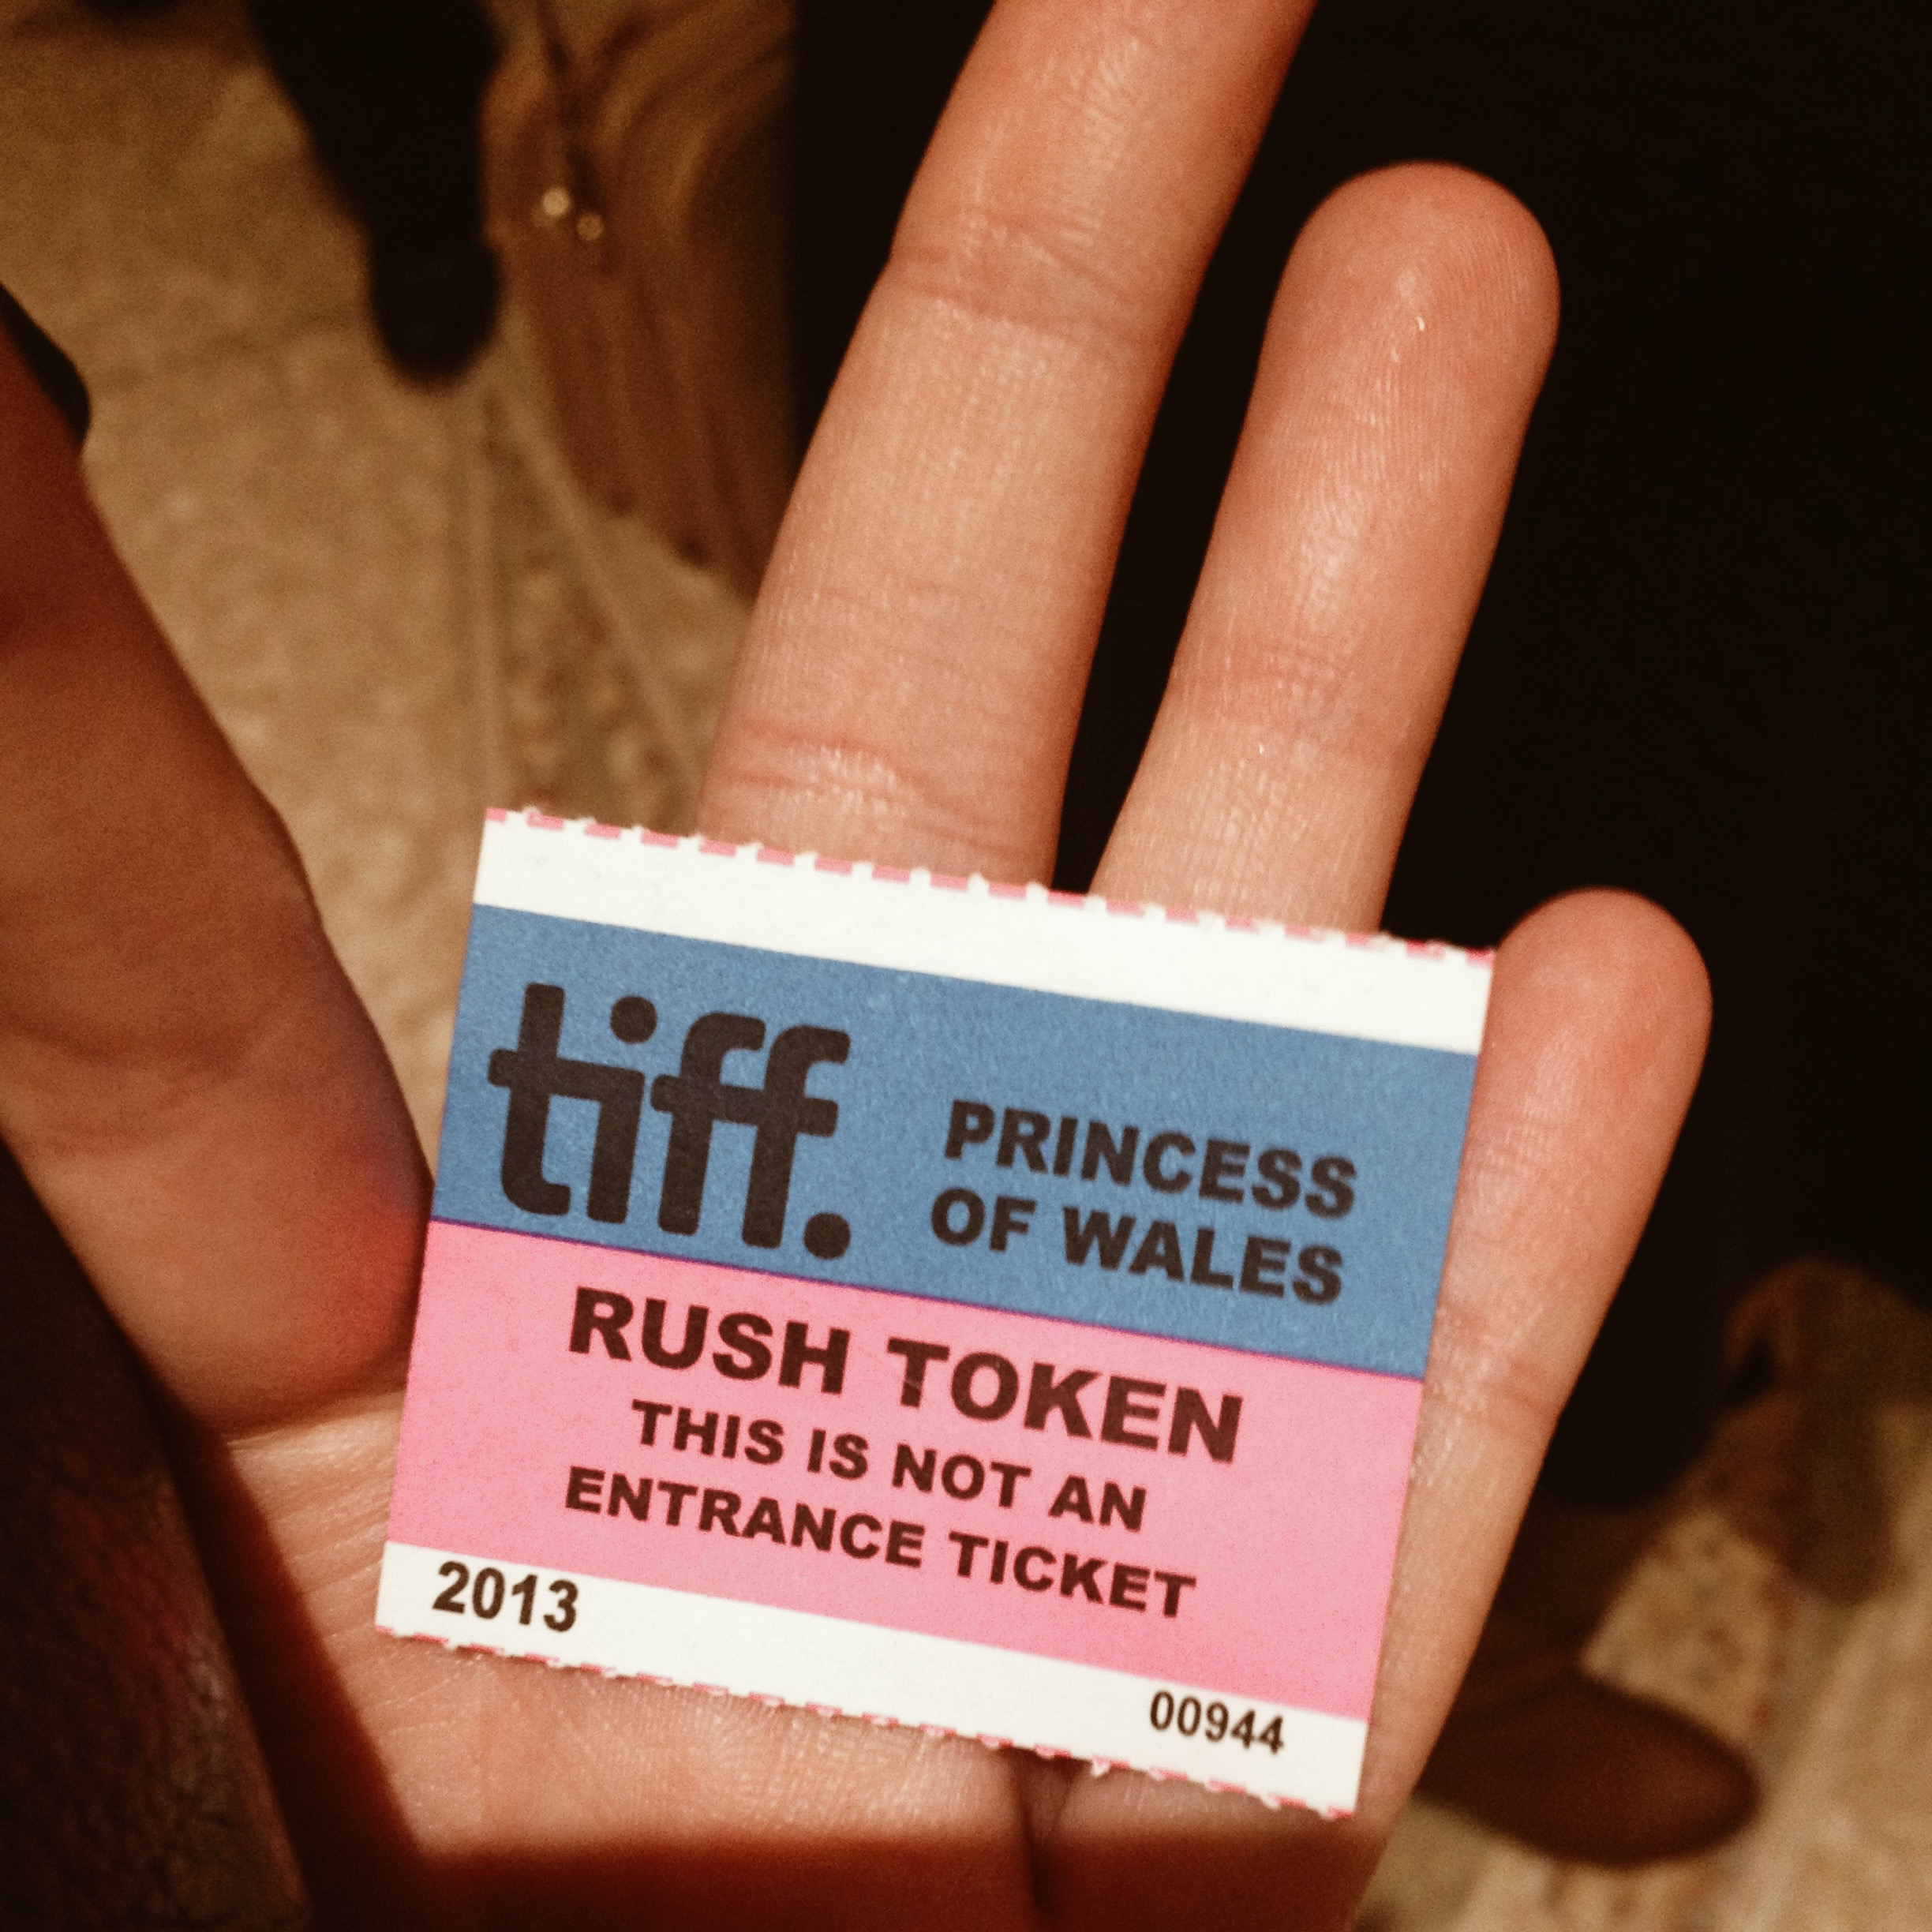 TIFF Rush ticket